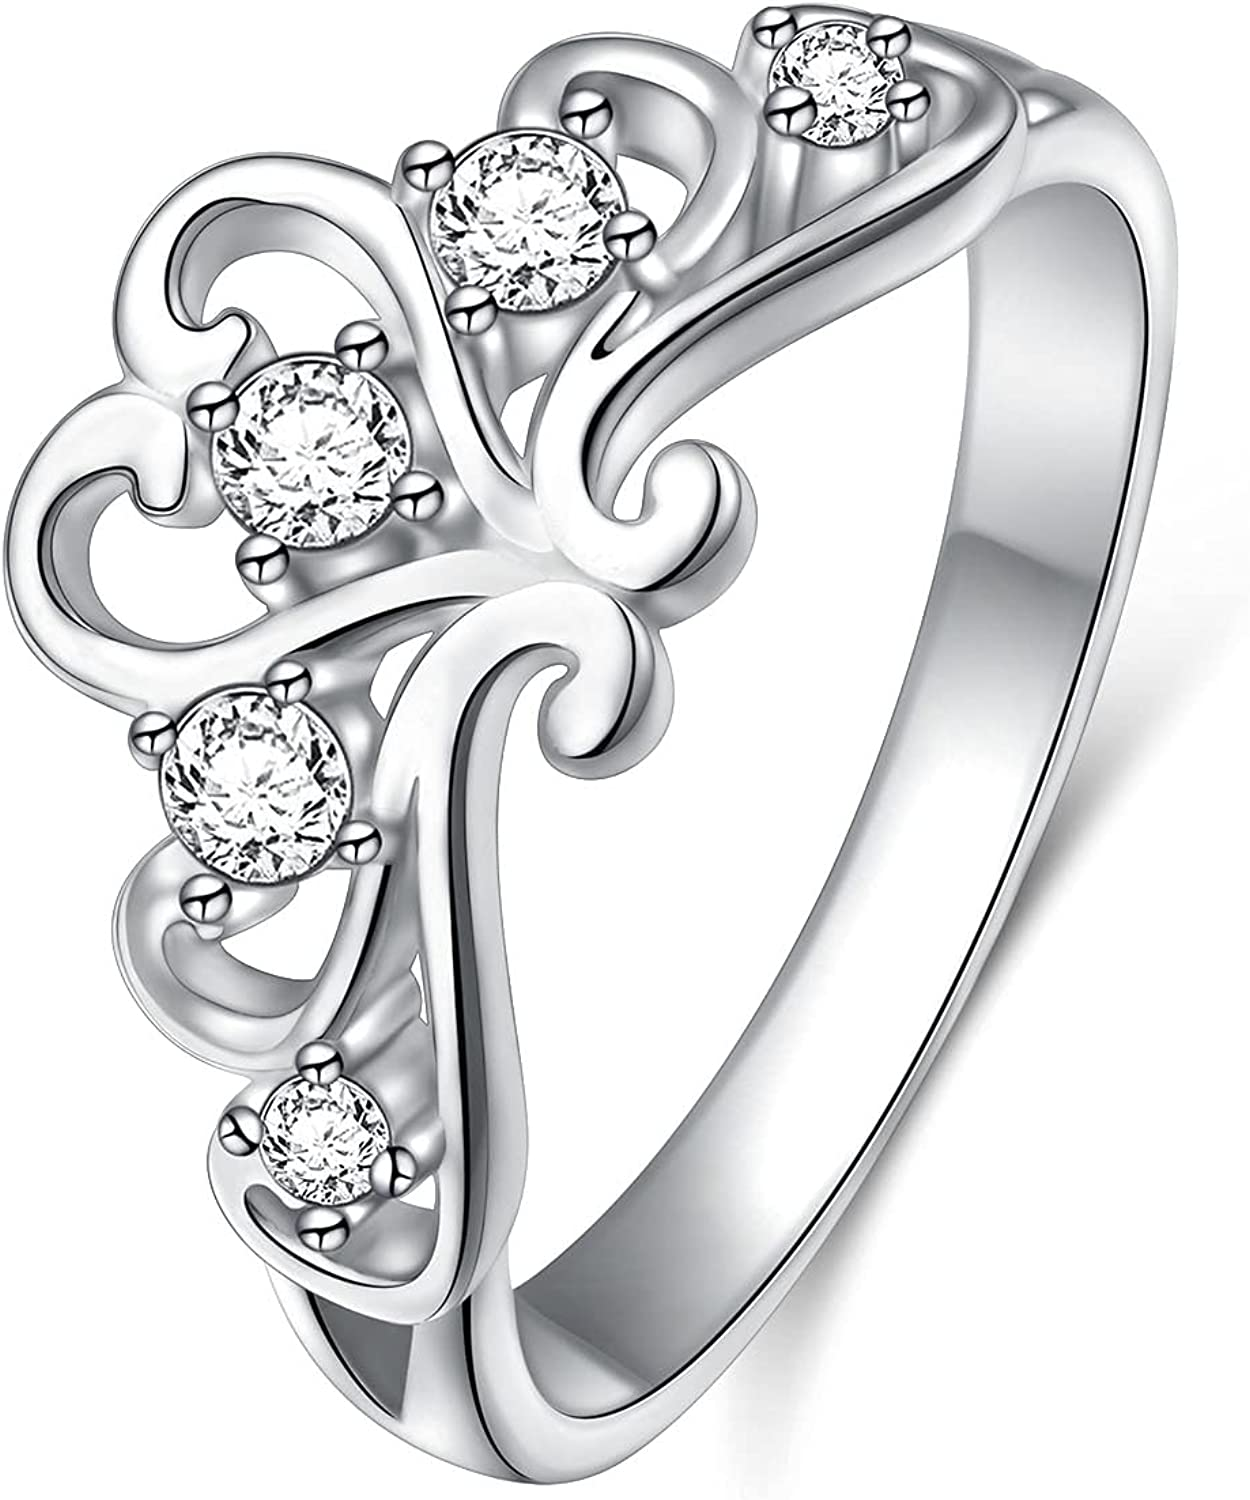 At the price of surprise 925 Sterling Silver Cubic Zirconia fo Princess Crown Tiara Rings Credence